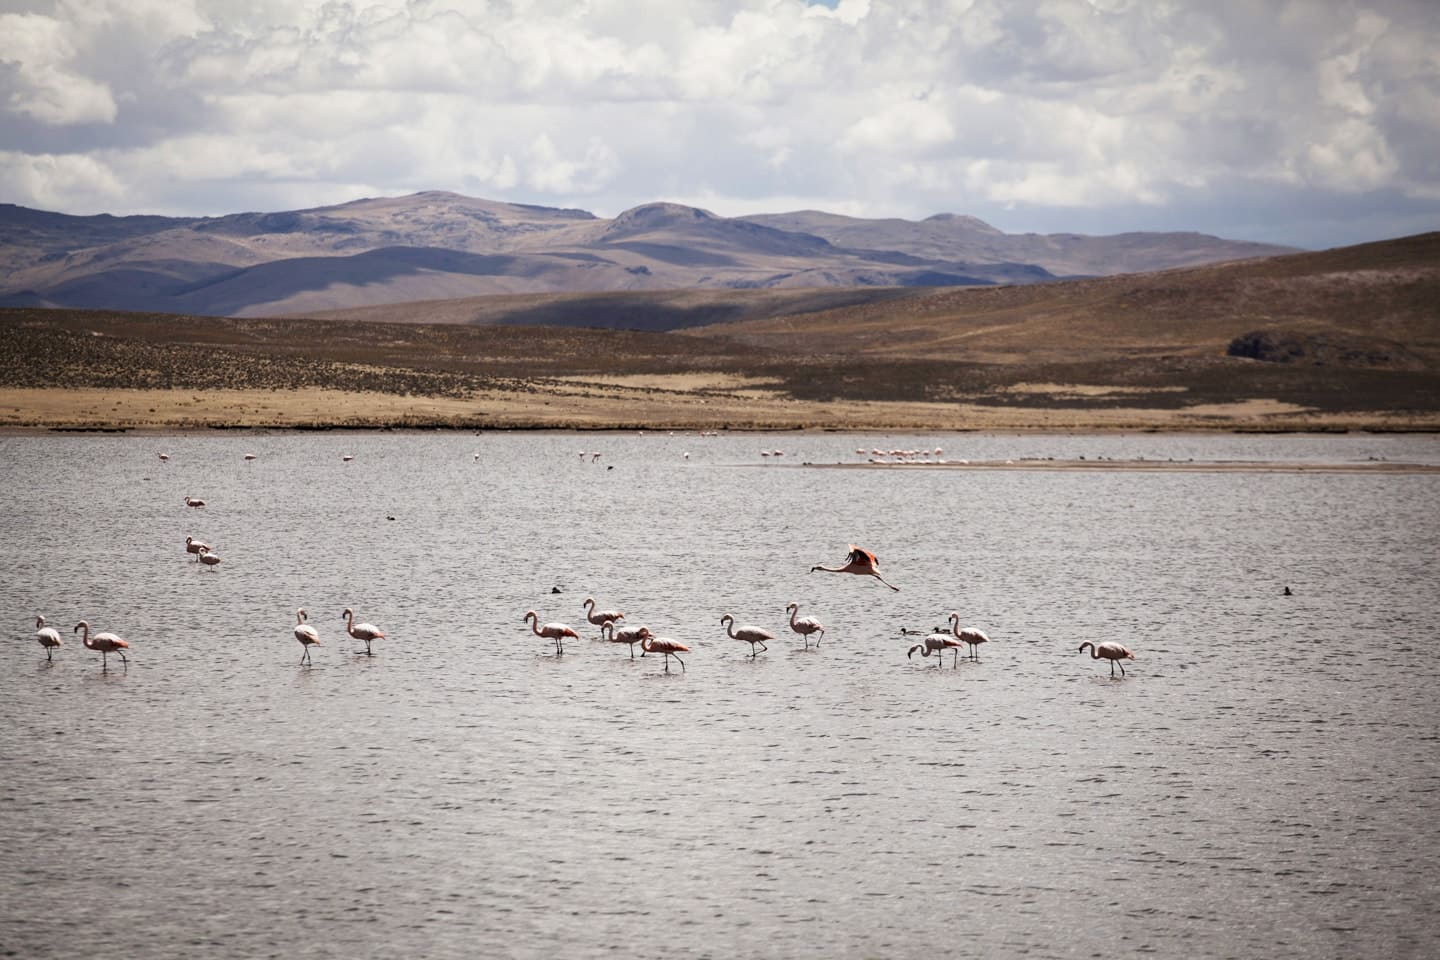 Alpacas in the plateau of Peru visting with Bus 4M Express